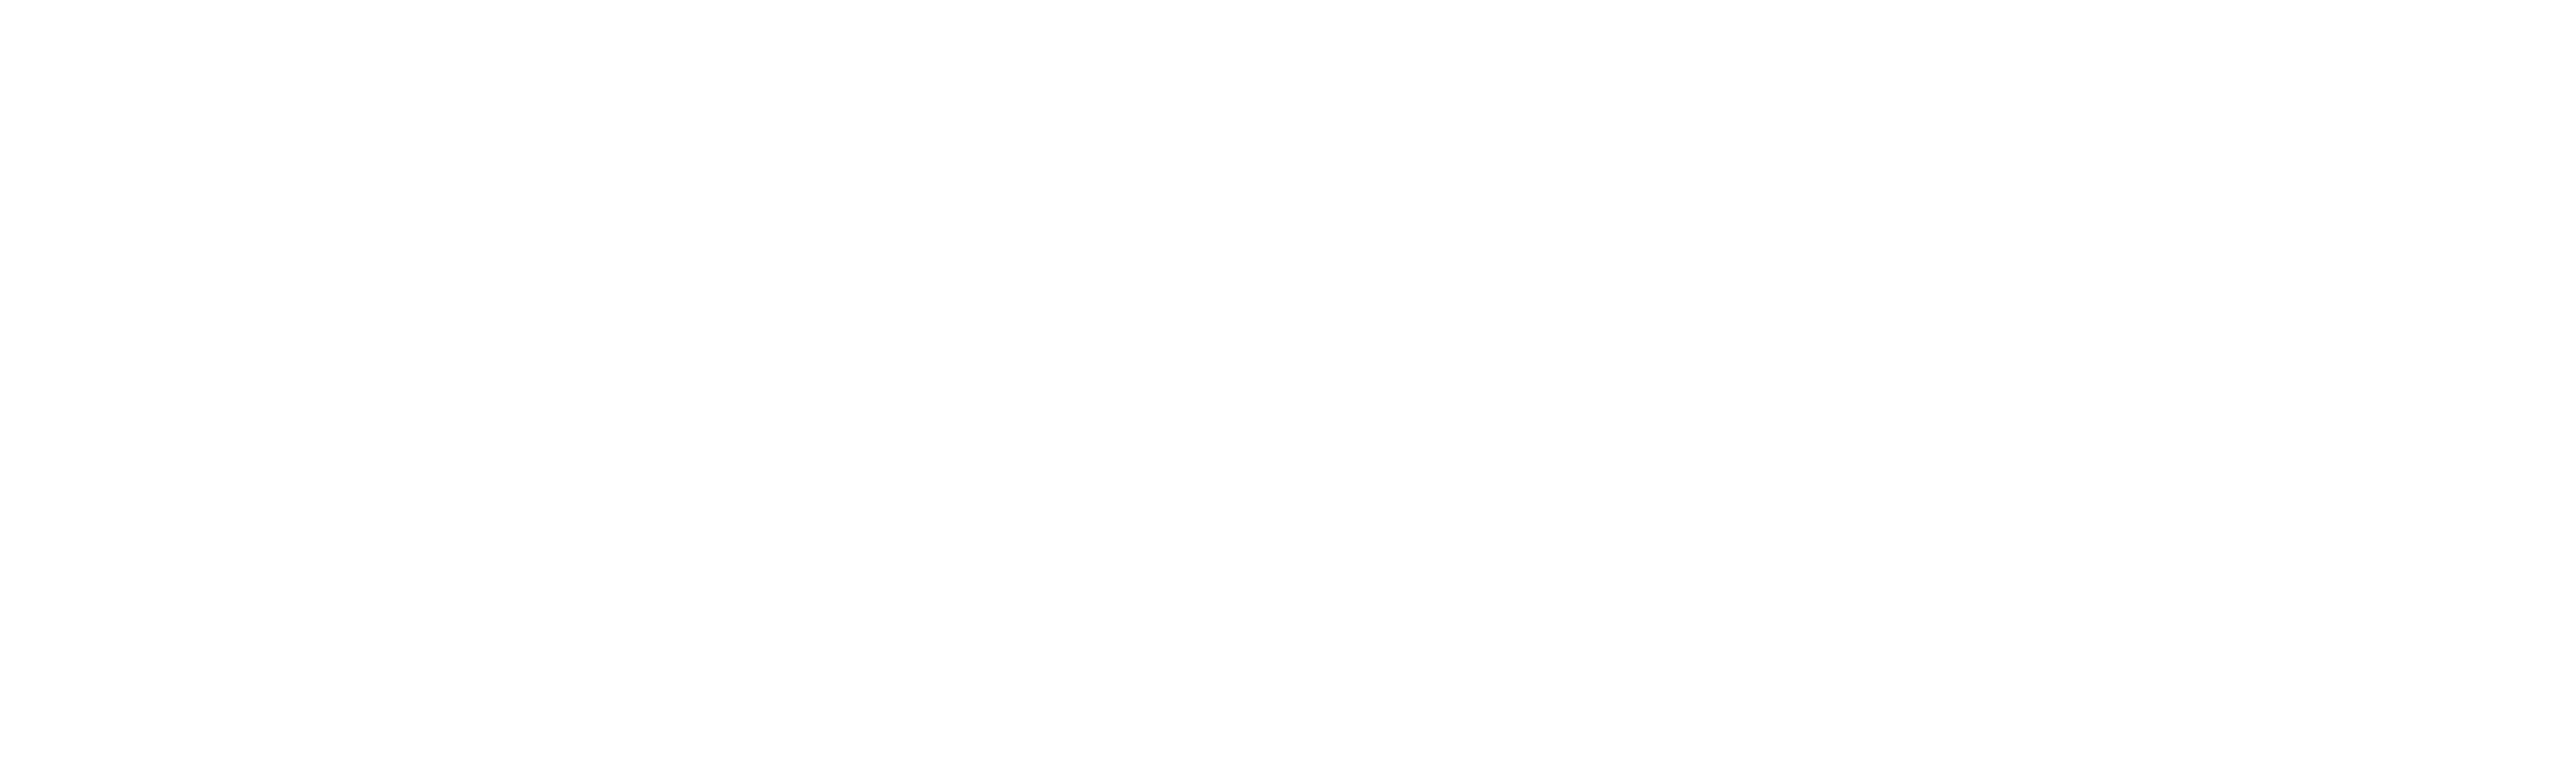 La Grande Church of the Nazarene